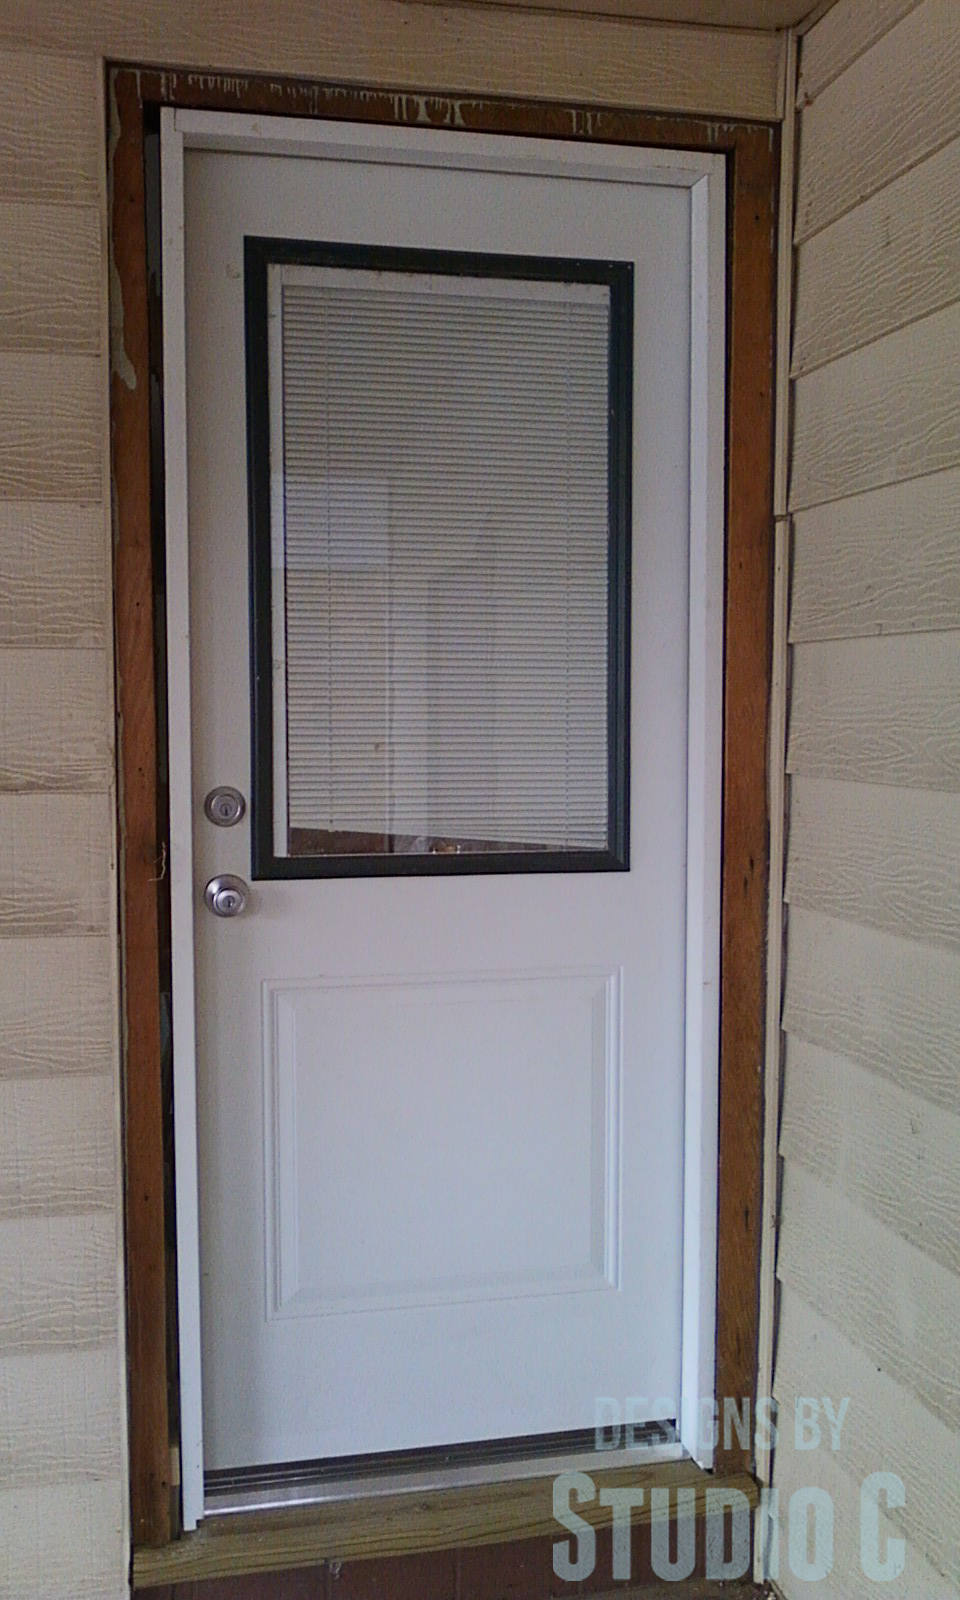 Replacing an exterior door designs by studio c for Exterior entry door